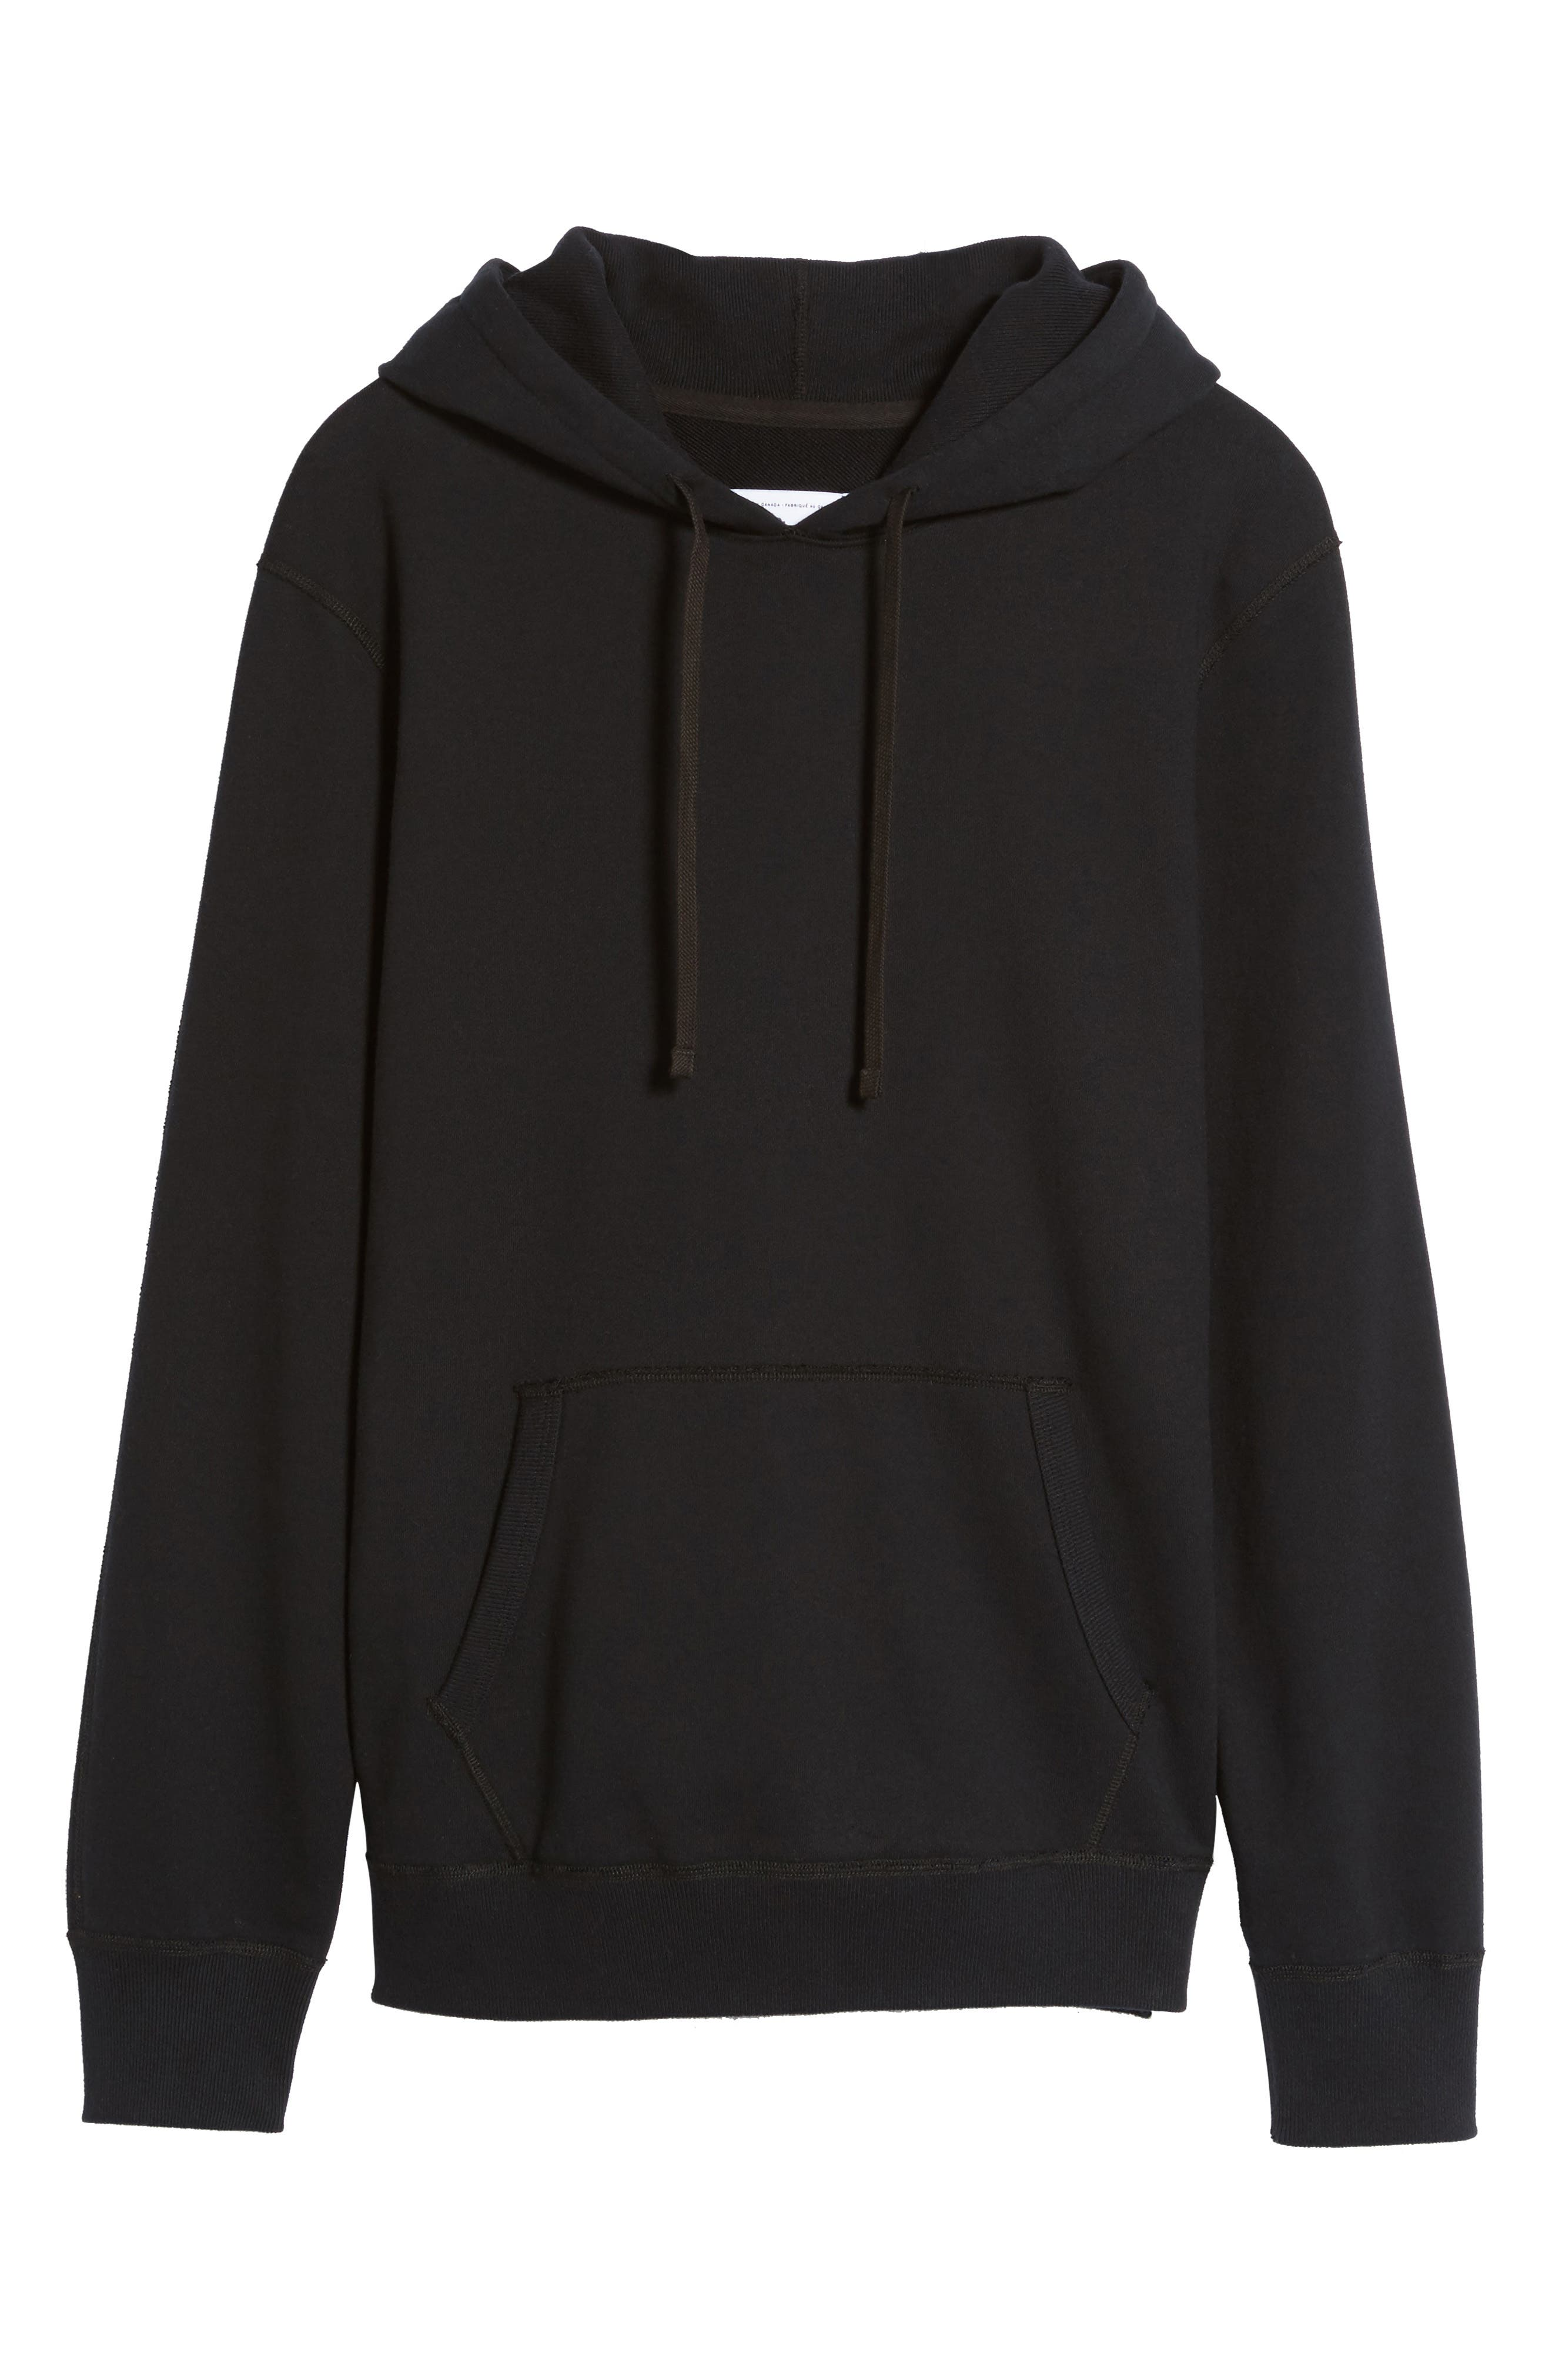 French Terry Hoodie,                             Alternate thumbnail 5, color,                             Black